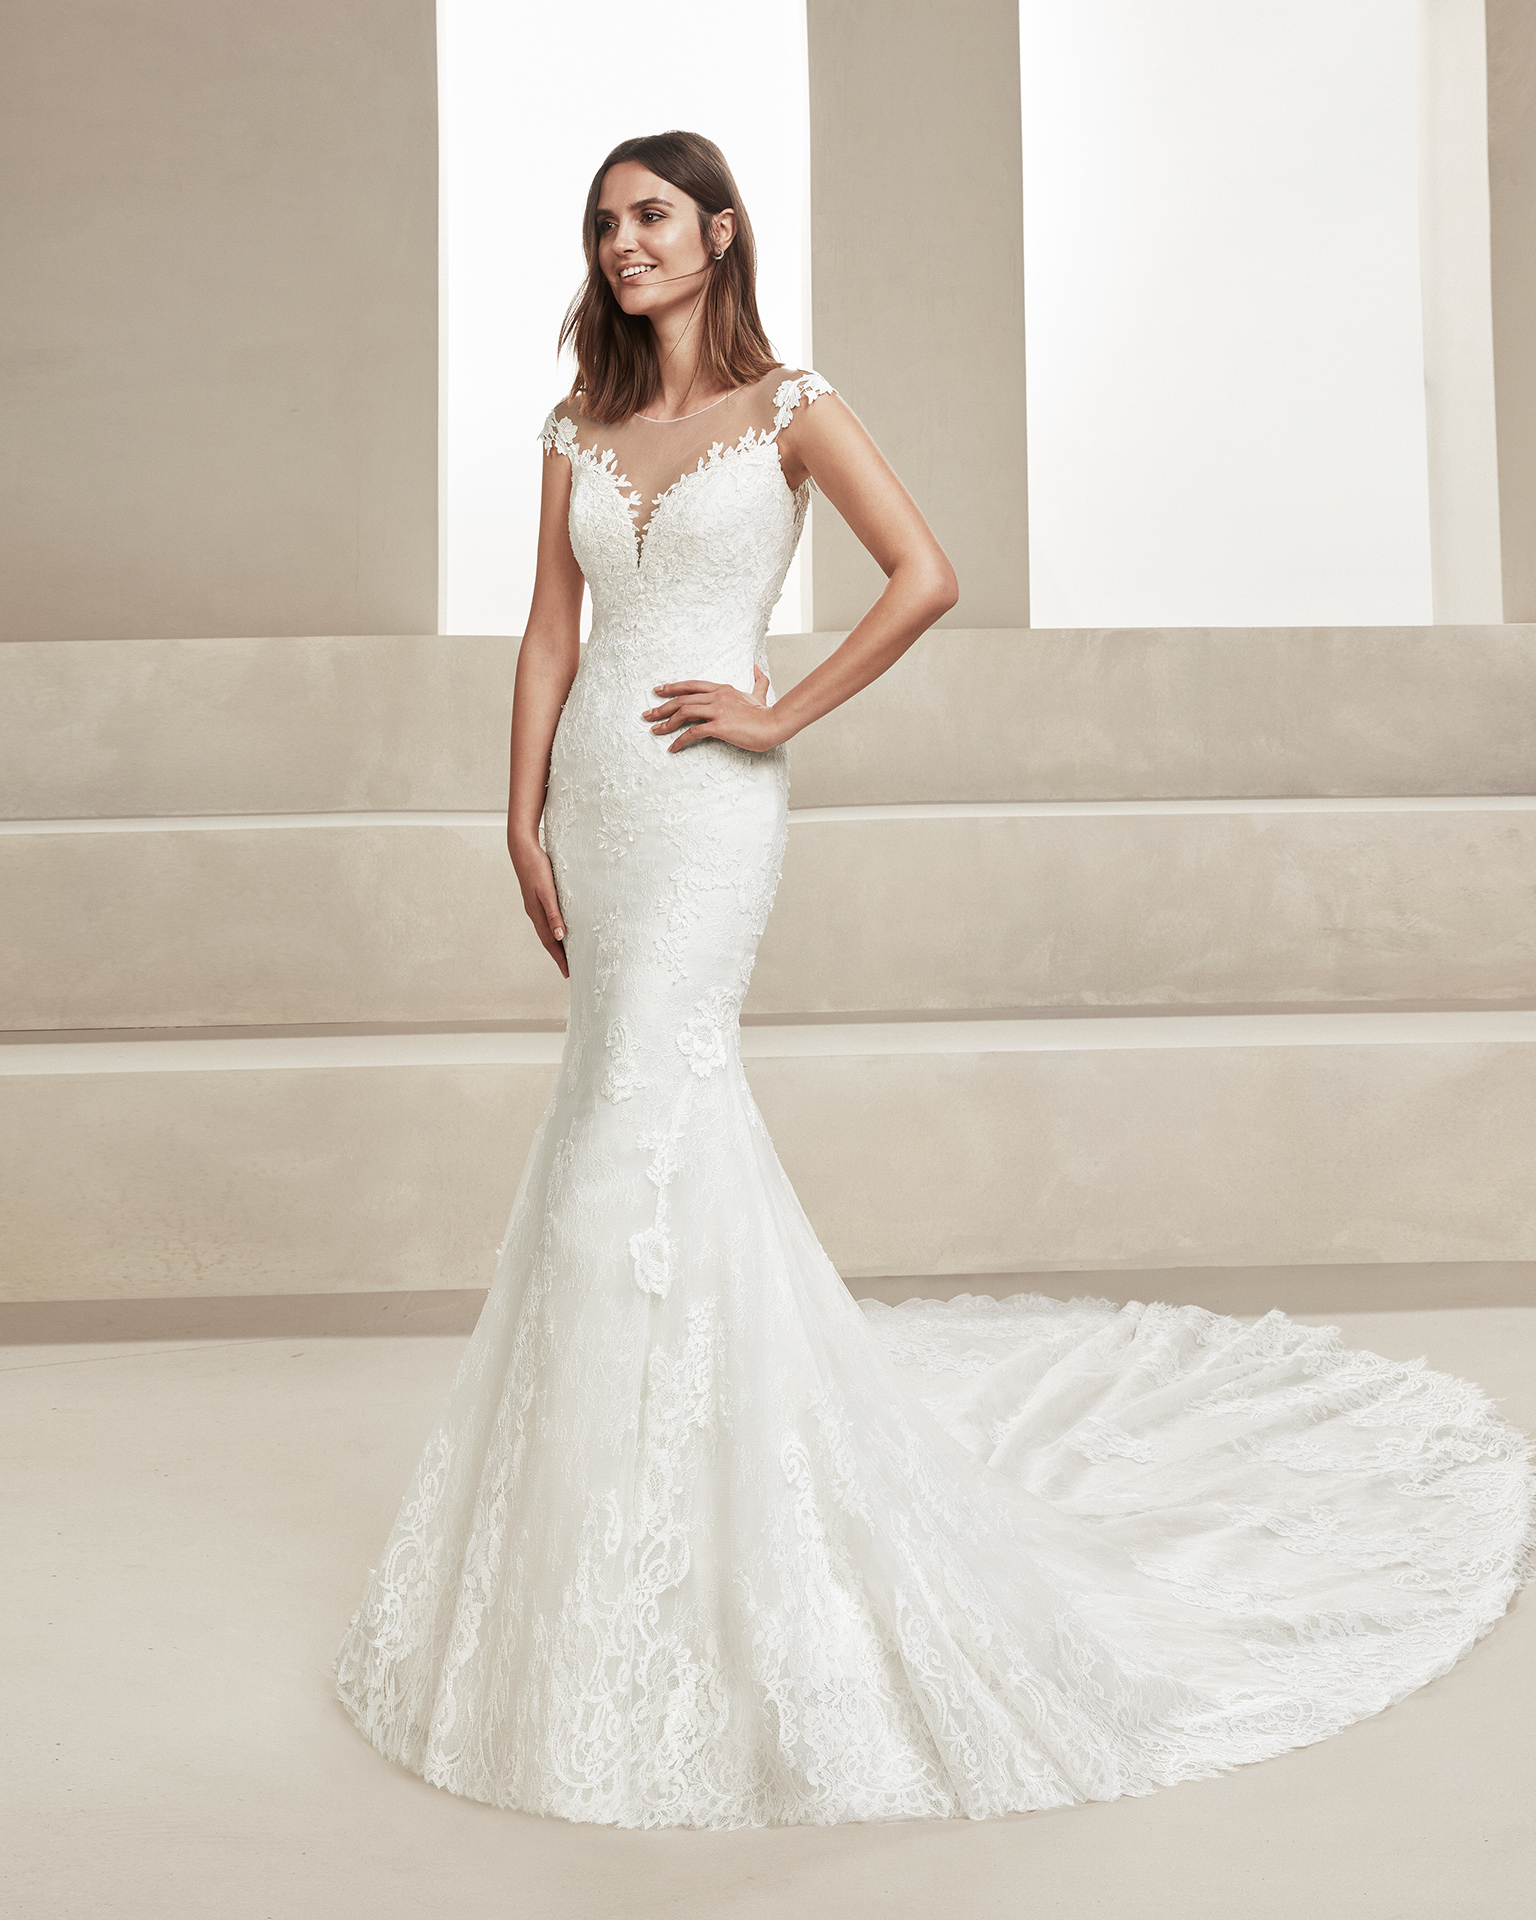 Mermaid-style beaded lace wedding dress. With illusion neckline and lace back. Available in natural. 2019 ALMA_NOVIA Collection.